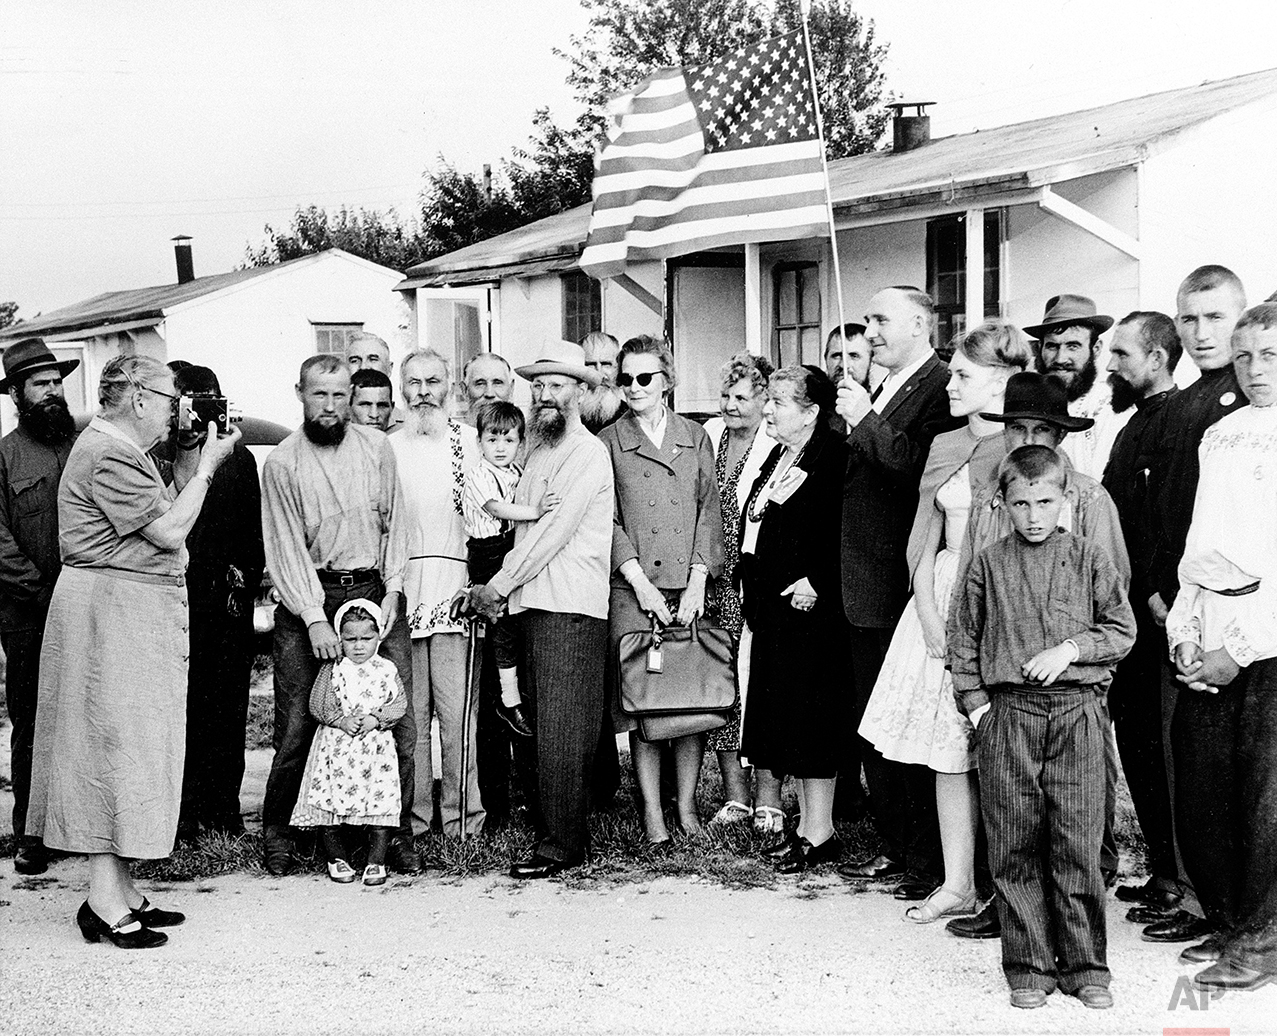 A group of 208 Russians, who arrived at a farm from Ankara, Turkey, pose for a picture taken by Countess Alexandra L. Tolstoy, left, president of the Tolstoy Foundation that sponsored their resettlement in Bridgeton, N.J., June 6, 1963. (AP Photo)